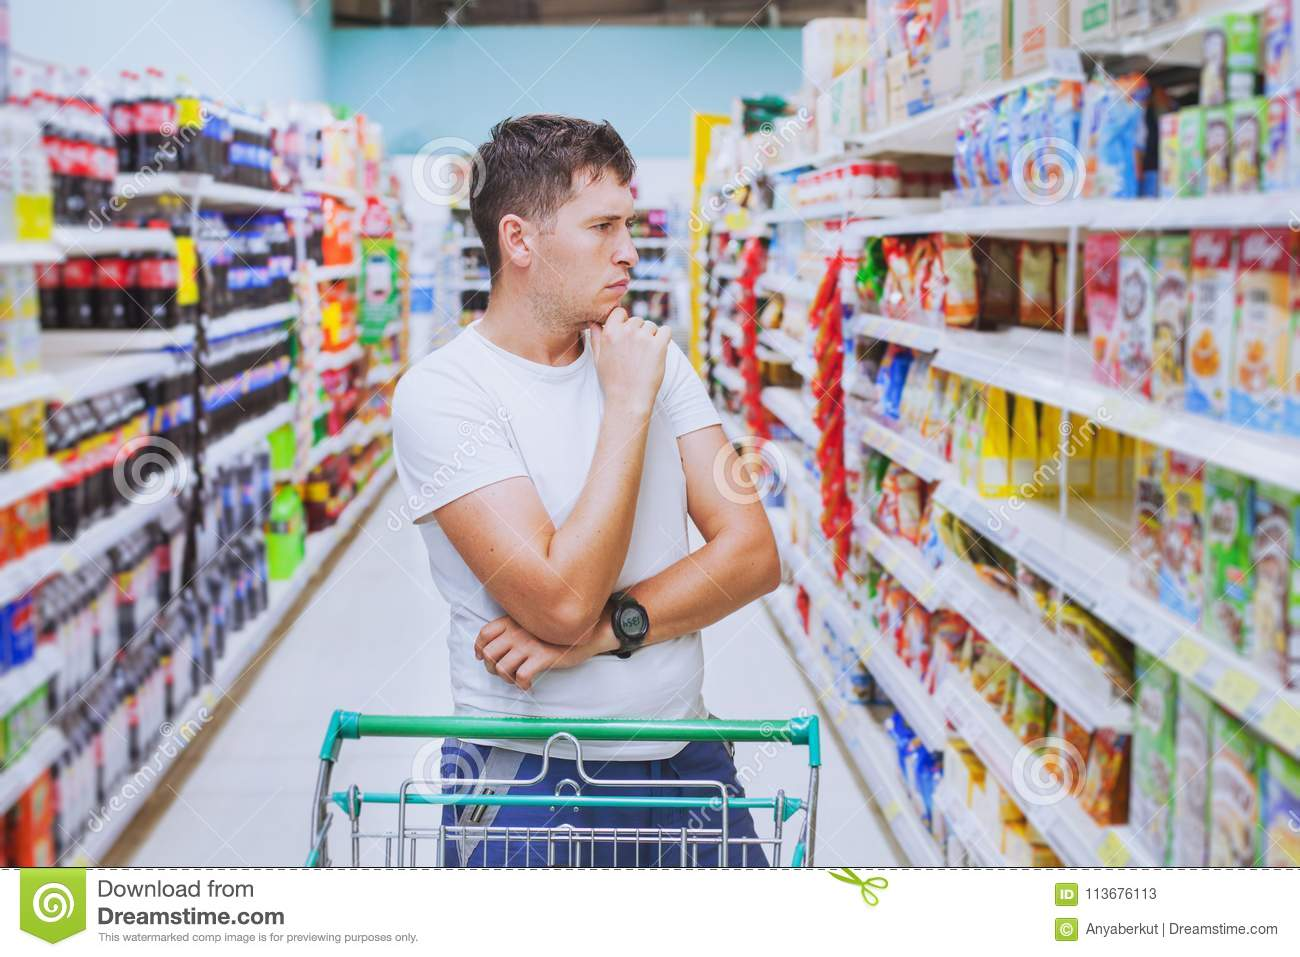 Man in the supermarket, customer thinking, choose what to buy